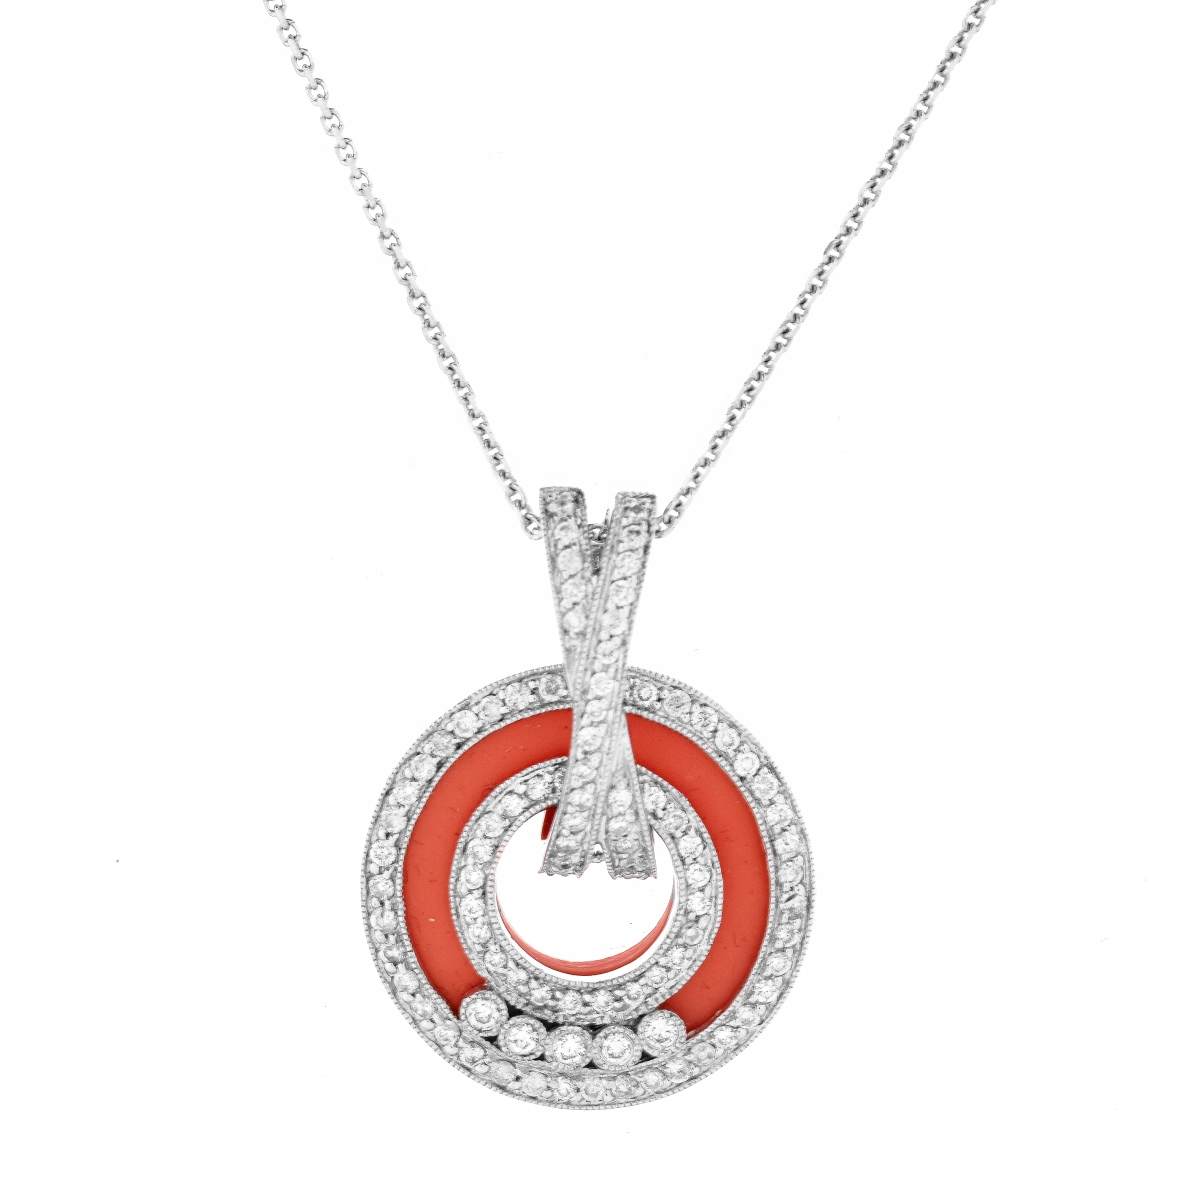 Diamond, Coral and 18K Pendant Necklace